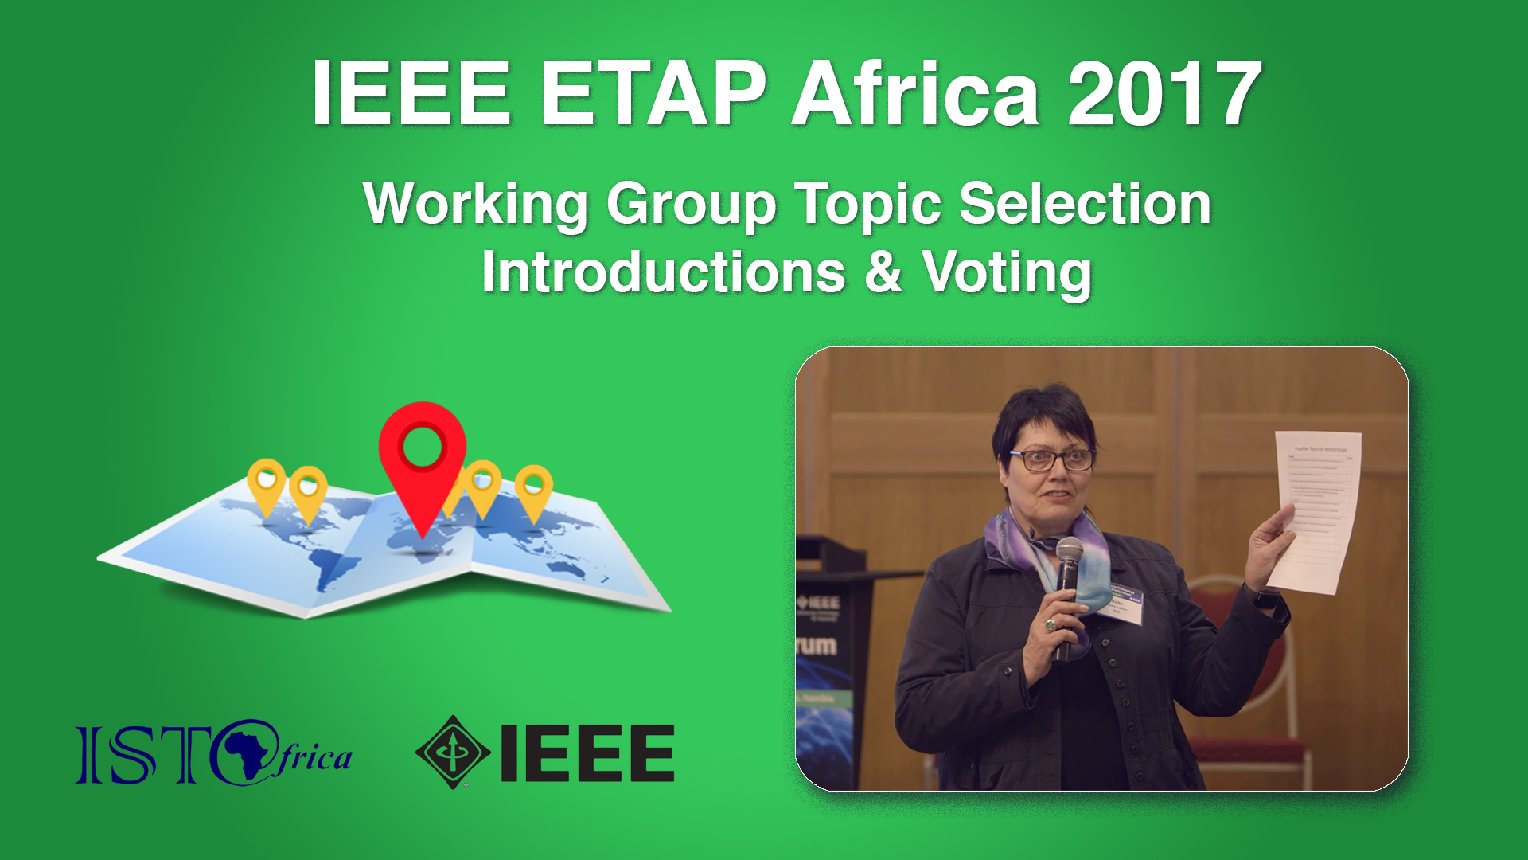 Working Group Topic Selection - ETAP Forum Namibia, Africa 2017